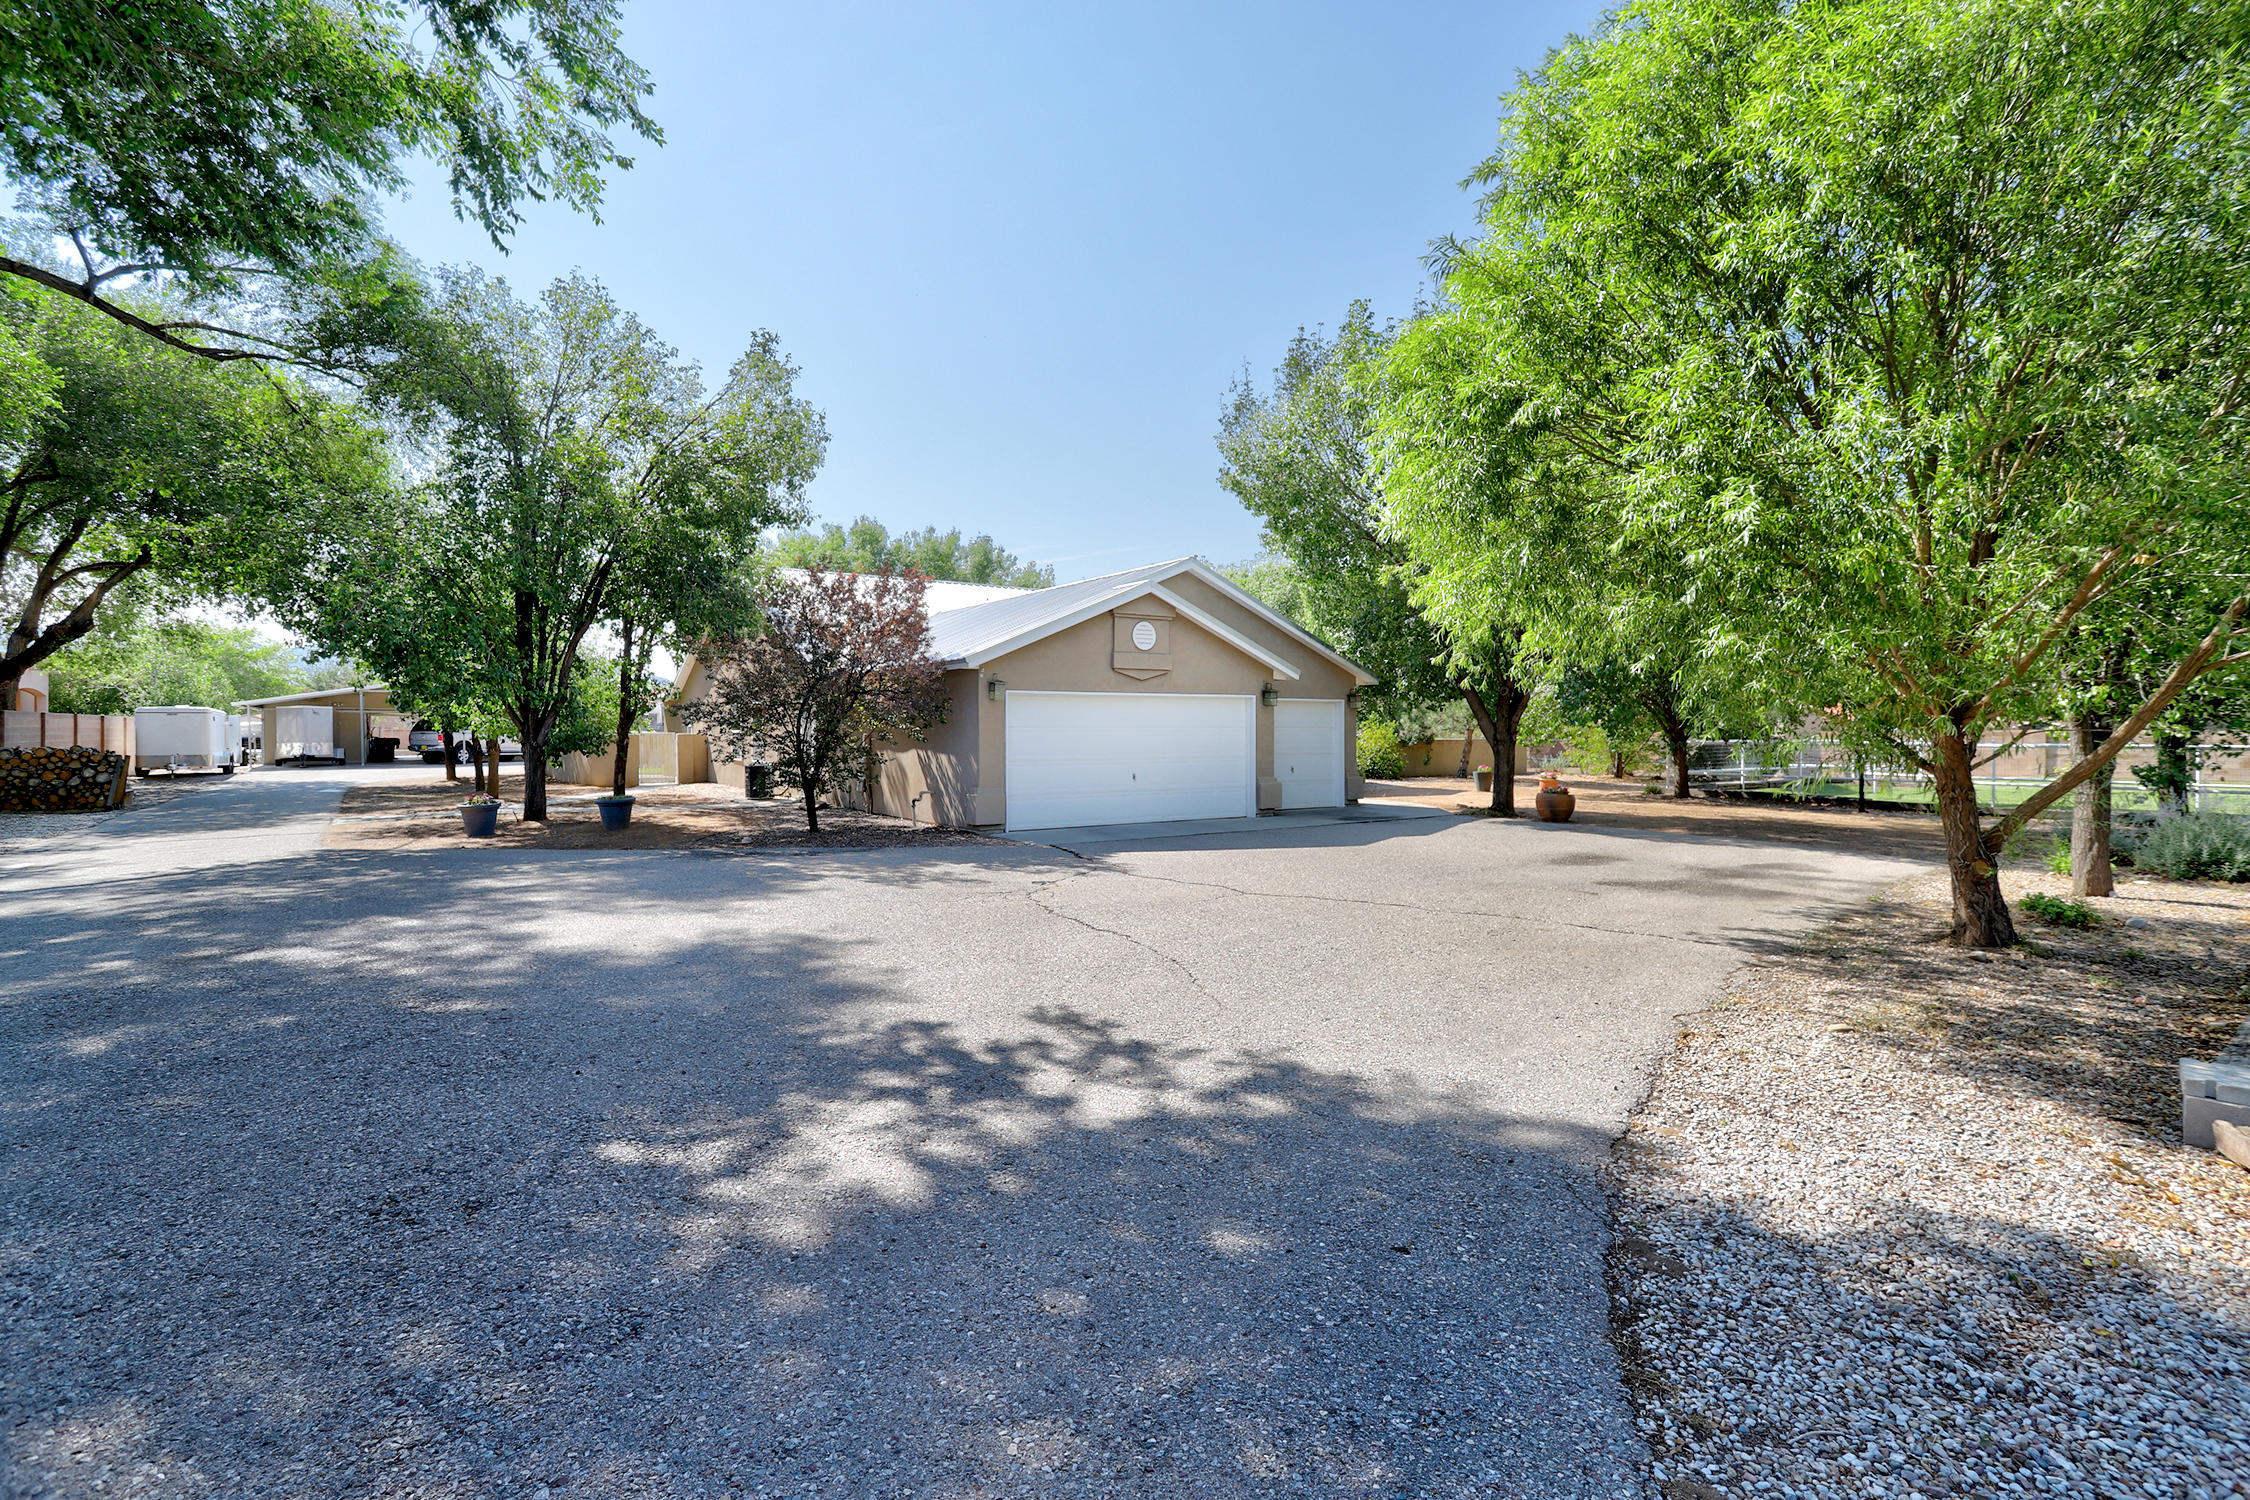 Amazing Horse Property on Two Acres w ditch rights city water and irrigation well with heated and cooled well house. Zoned agriculture. 1 acre of walnut trees  Beautiful pipe fencing gate welcomes you in to the lush property. The barn has 4 stalls, tack room, hay storage and a 1/2 bathroom. Barn opens to the lighted arena. Relax on the covered patio next to the waterfall, and pond. Enjoy the outdoor fireplace on those cool evenings. Foyer enterance opens to oversized dining room and open kitchen. Great room with gas fireplace and built-in bookcases glass door to covered patio. Front office perfect for working from home. Owners retreat boasts walk in closet and beautiful updated bath with dual shower and glass door to backyard. Easy access to walking, bike, and riding trails and Open Space.